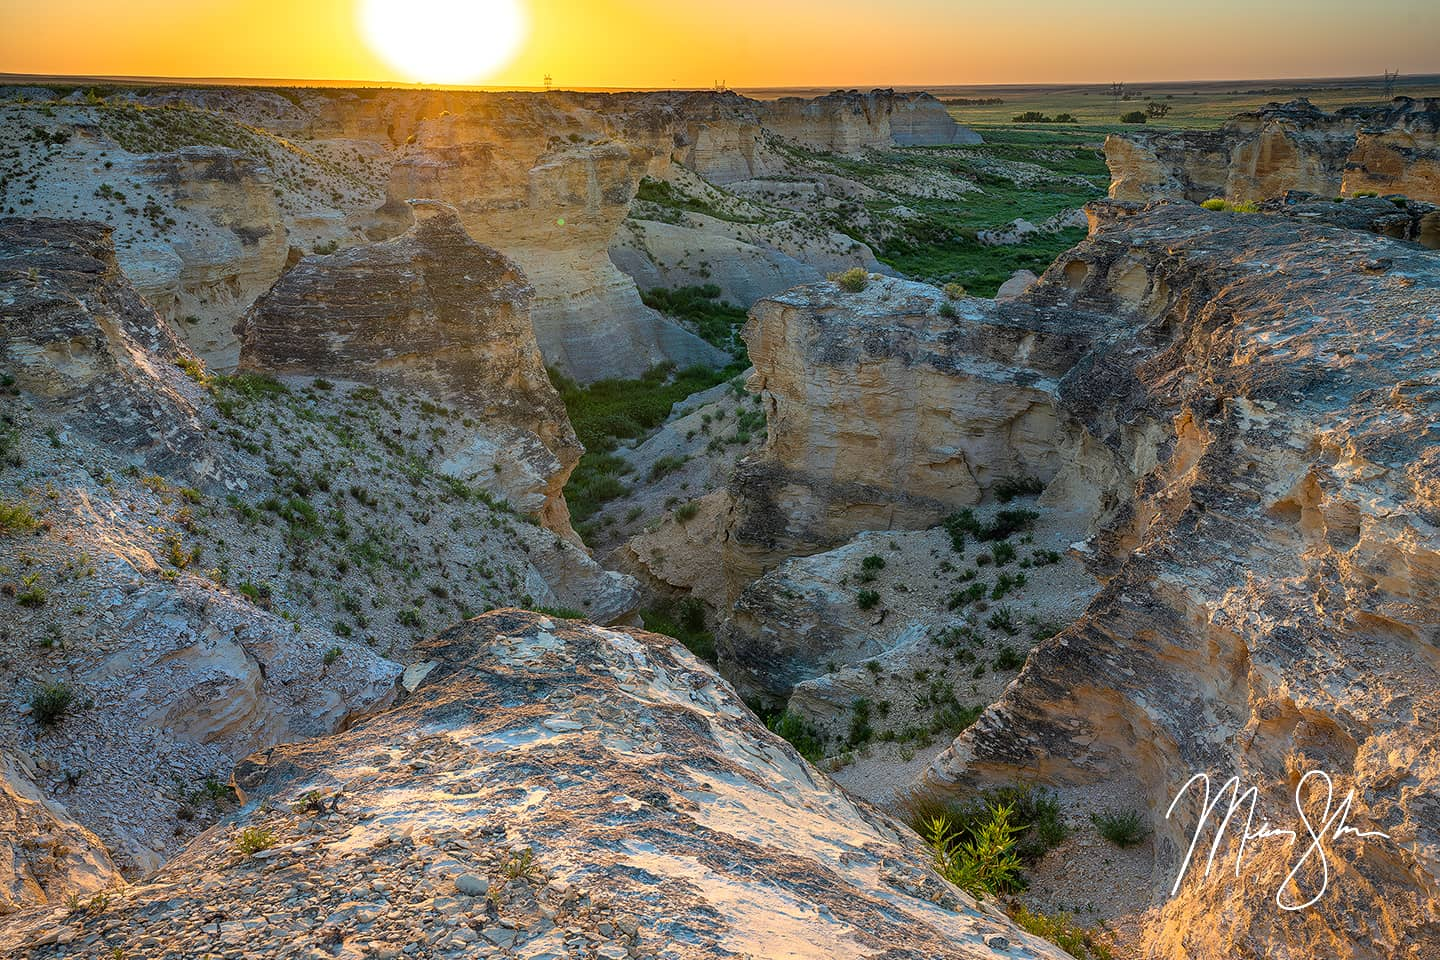 Open edition fine art print of Little Jerusalem Badlands from Mickey Shannon Photography. Location: Little Jerusalem Badlands State Park, Kansas